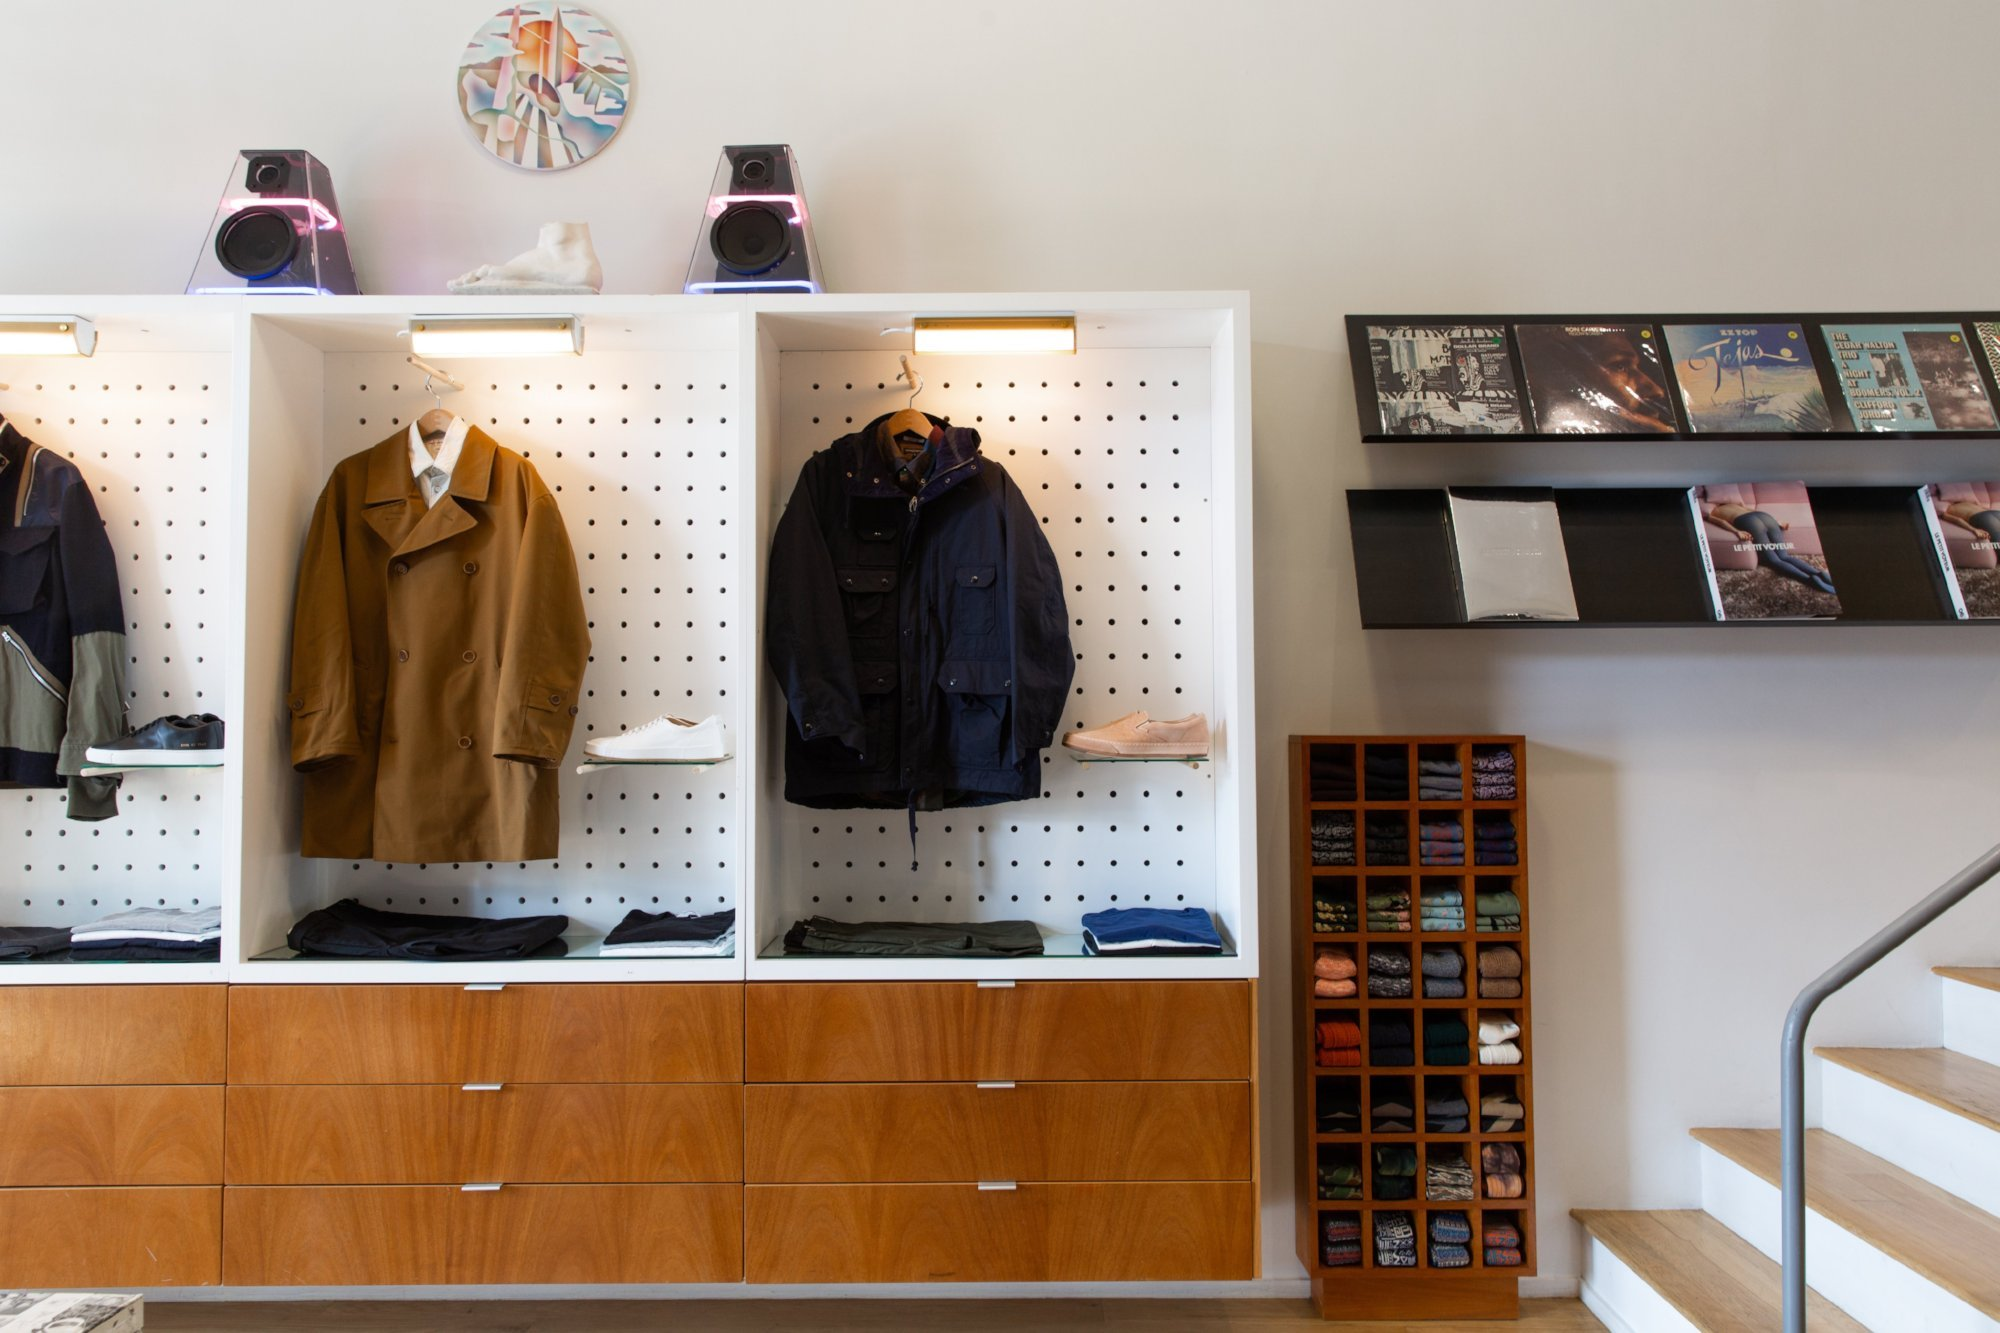 MOHAWK GENERAL STORE - Founded by Kevin and Bo Carney, Mohawk General Store carries local designers, international brands and their very own label - SMOCK.Visit one of their stores in Silverlake or Santa Monica.